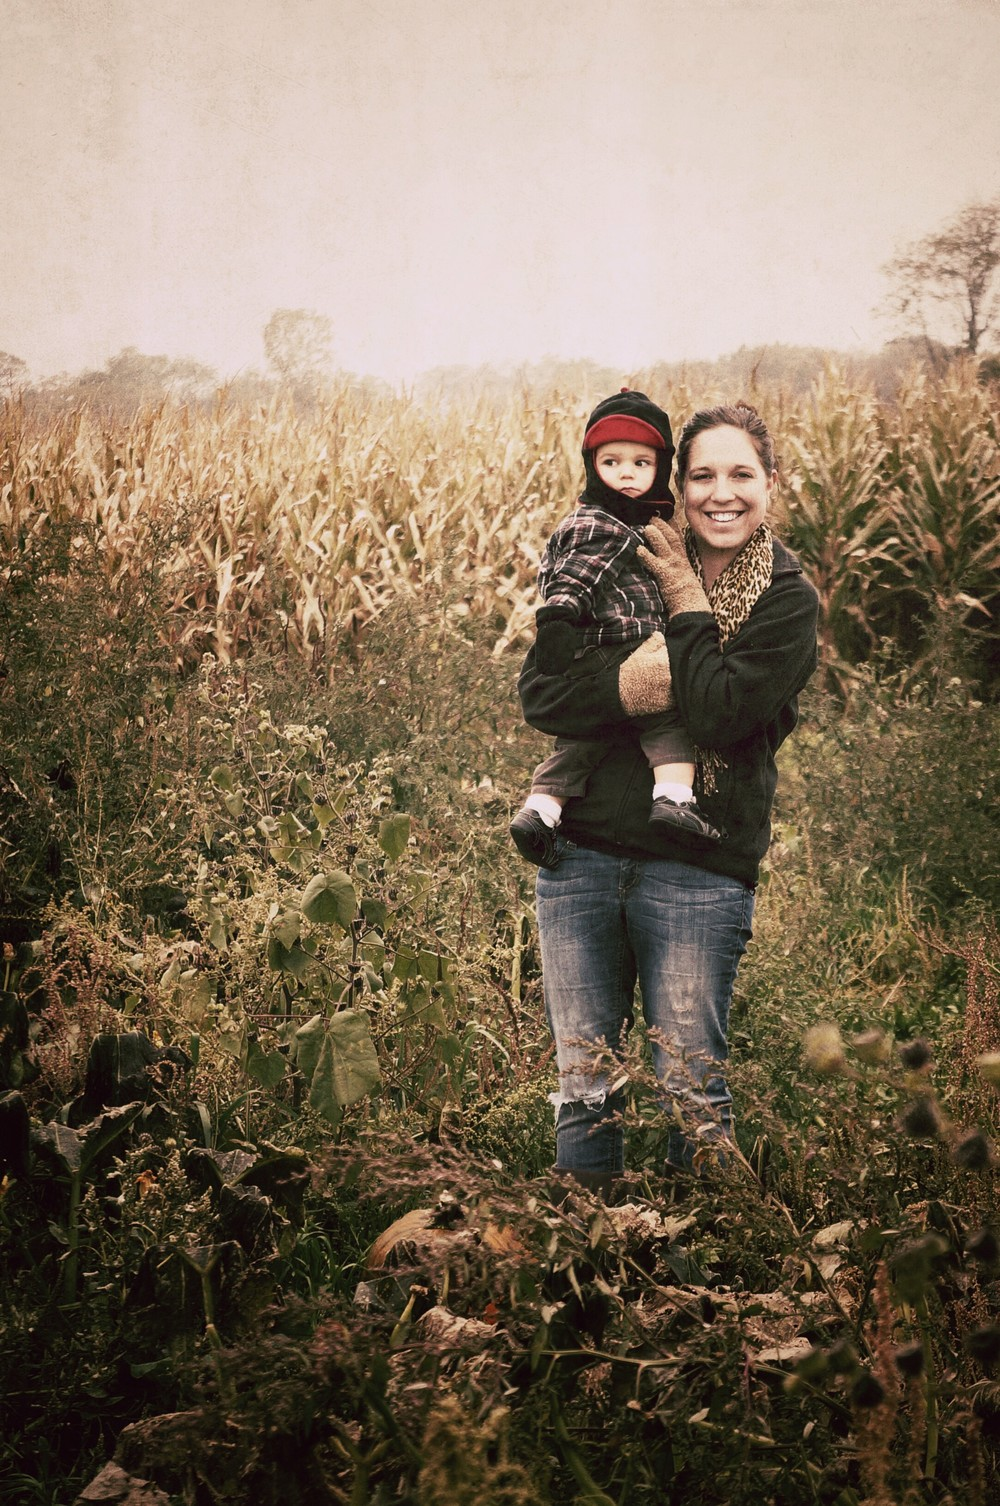 Ryker and mommy